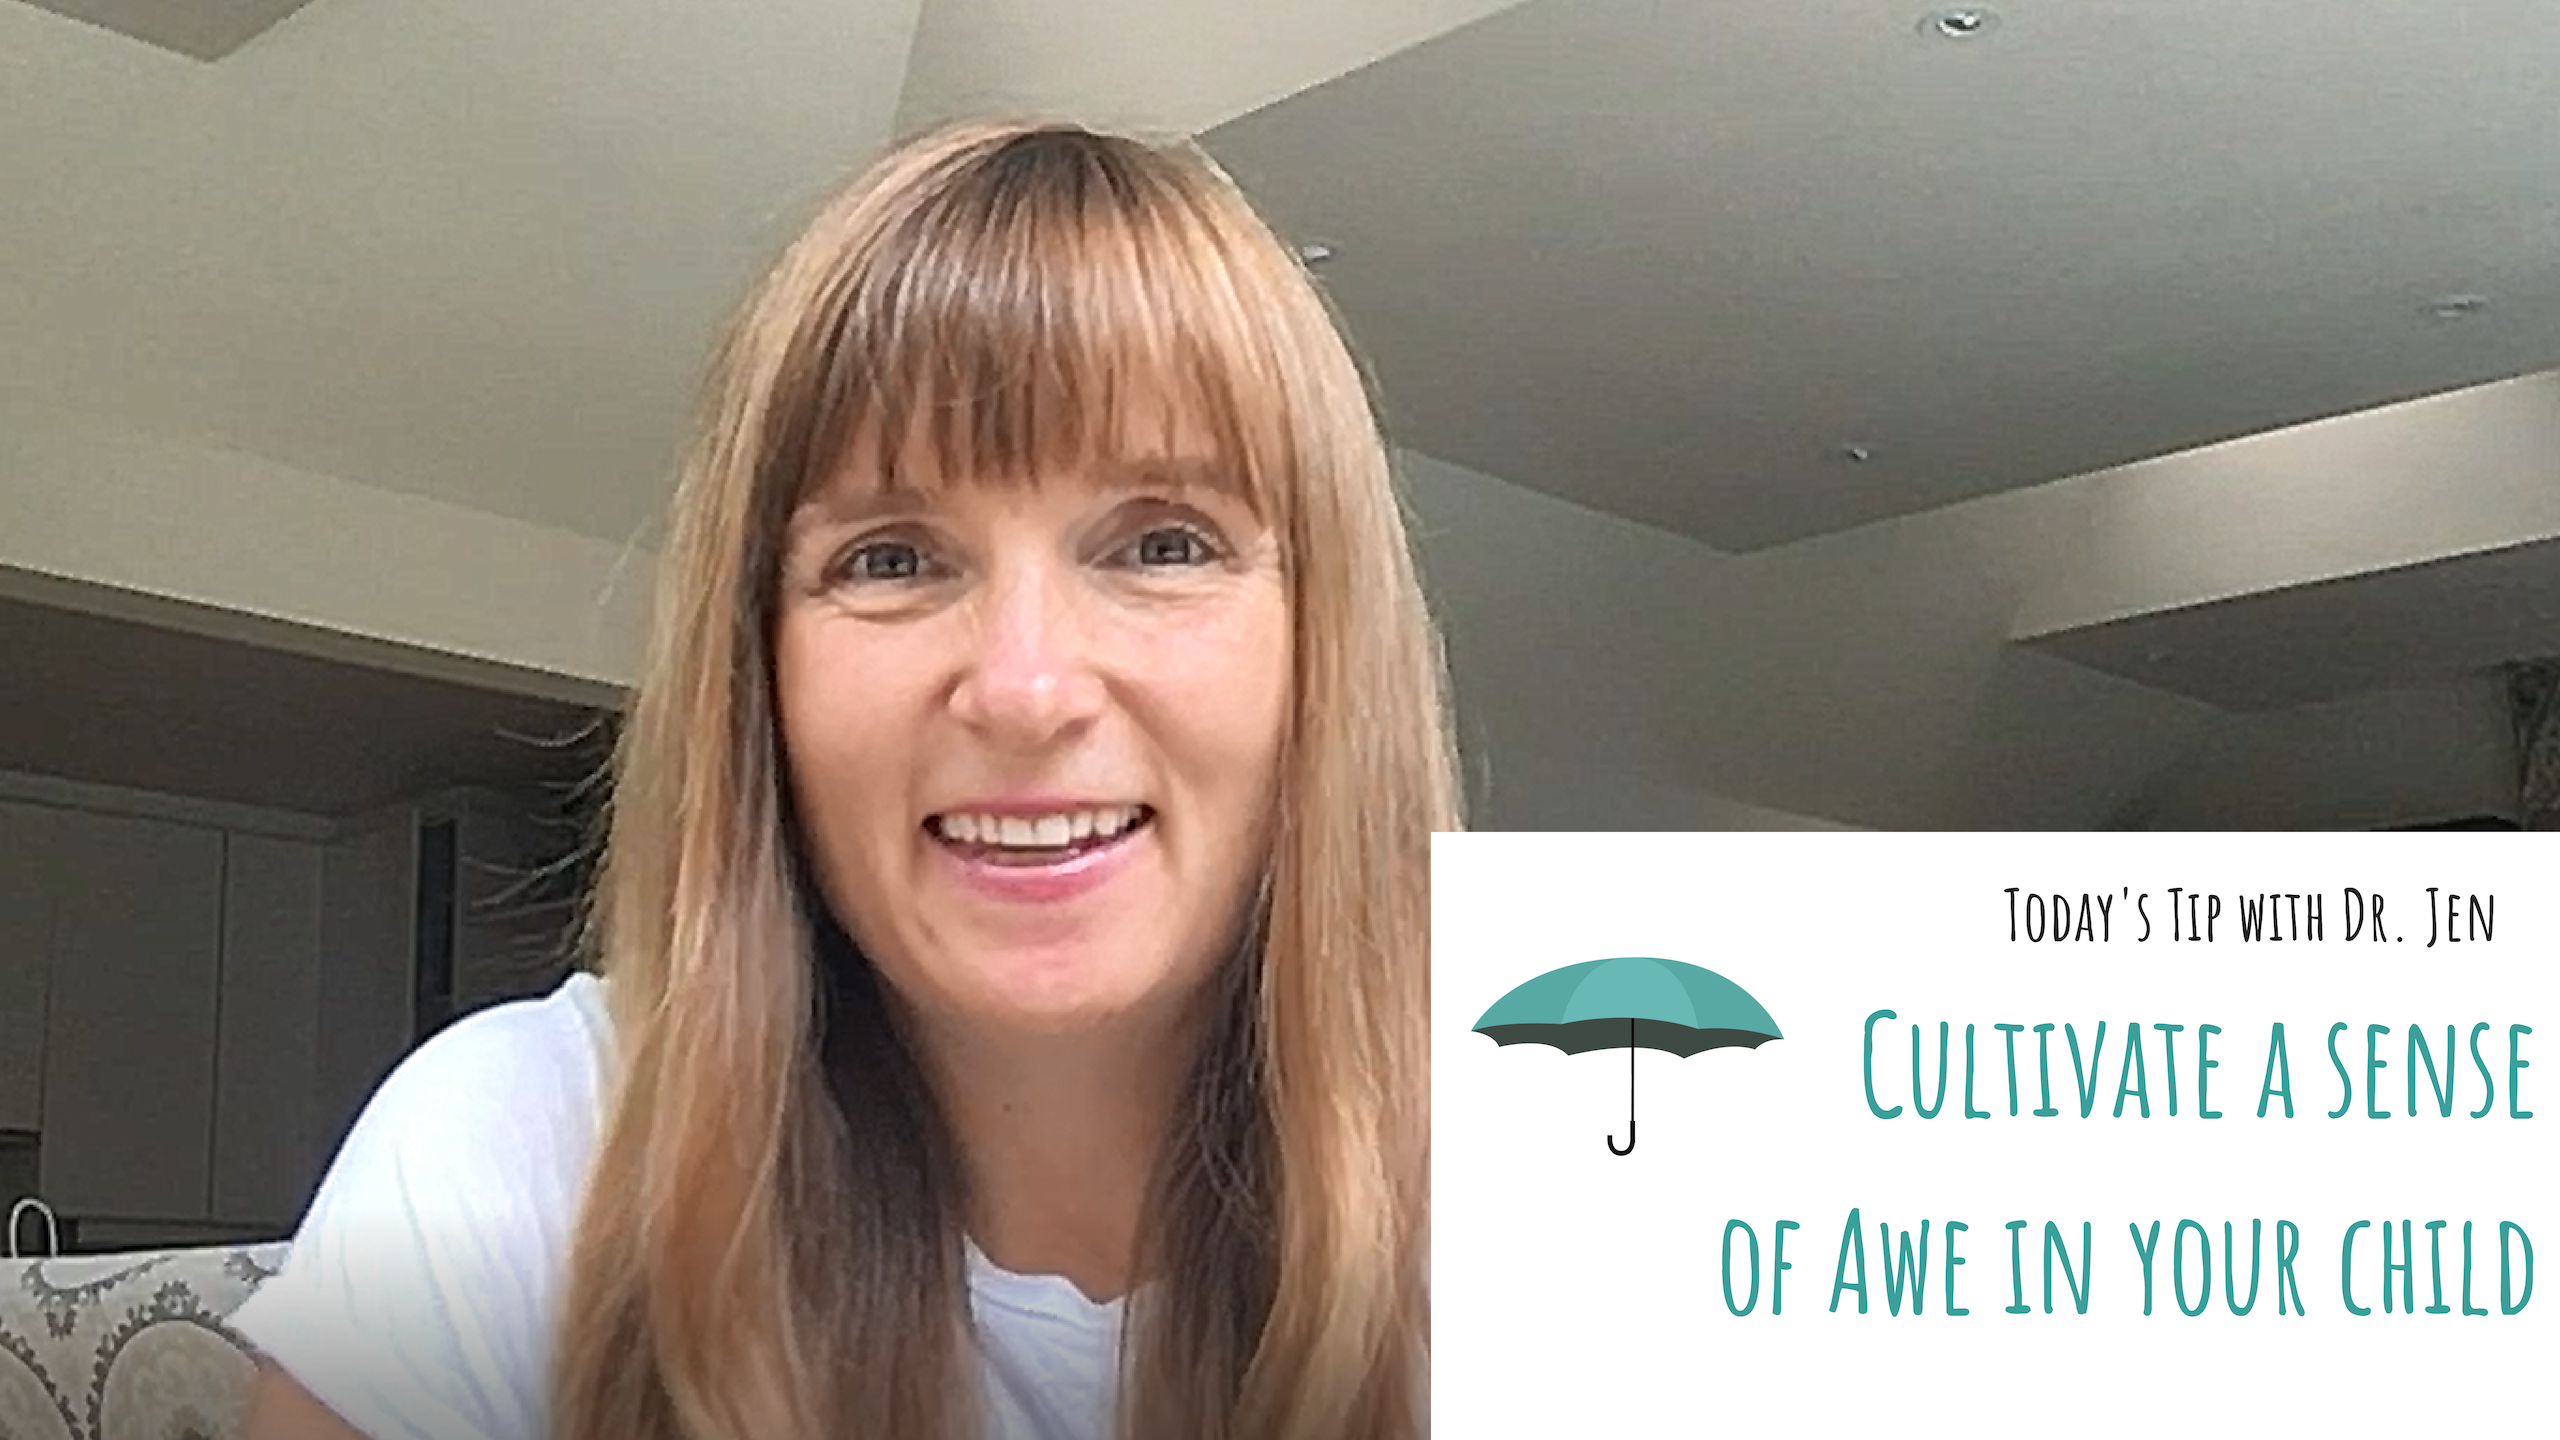 Today's Tip with Dr. Jen: Cultivate a Sense of Awe in Your Child